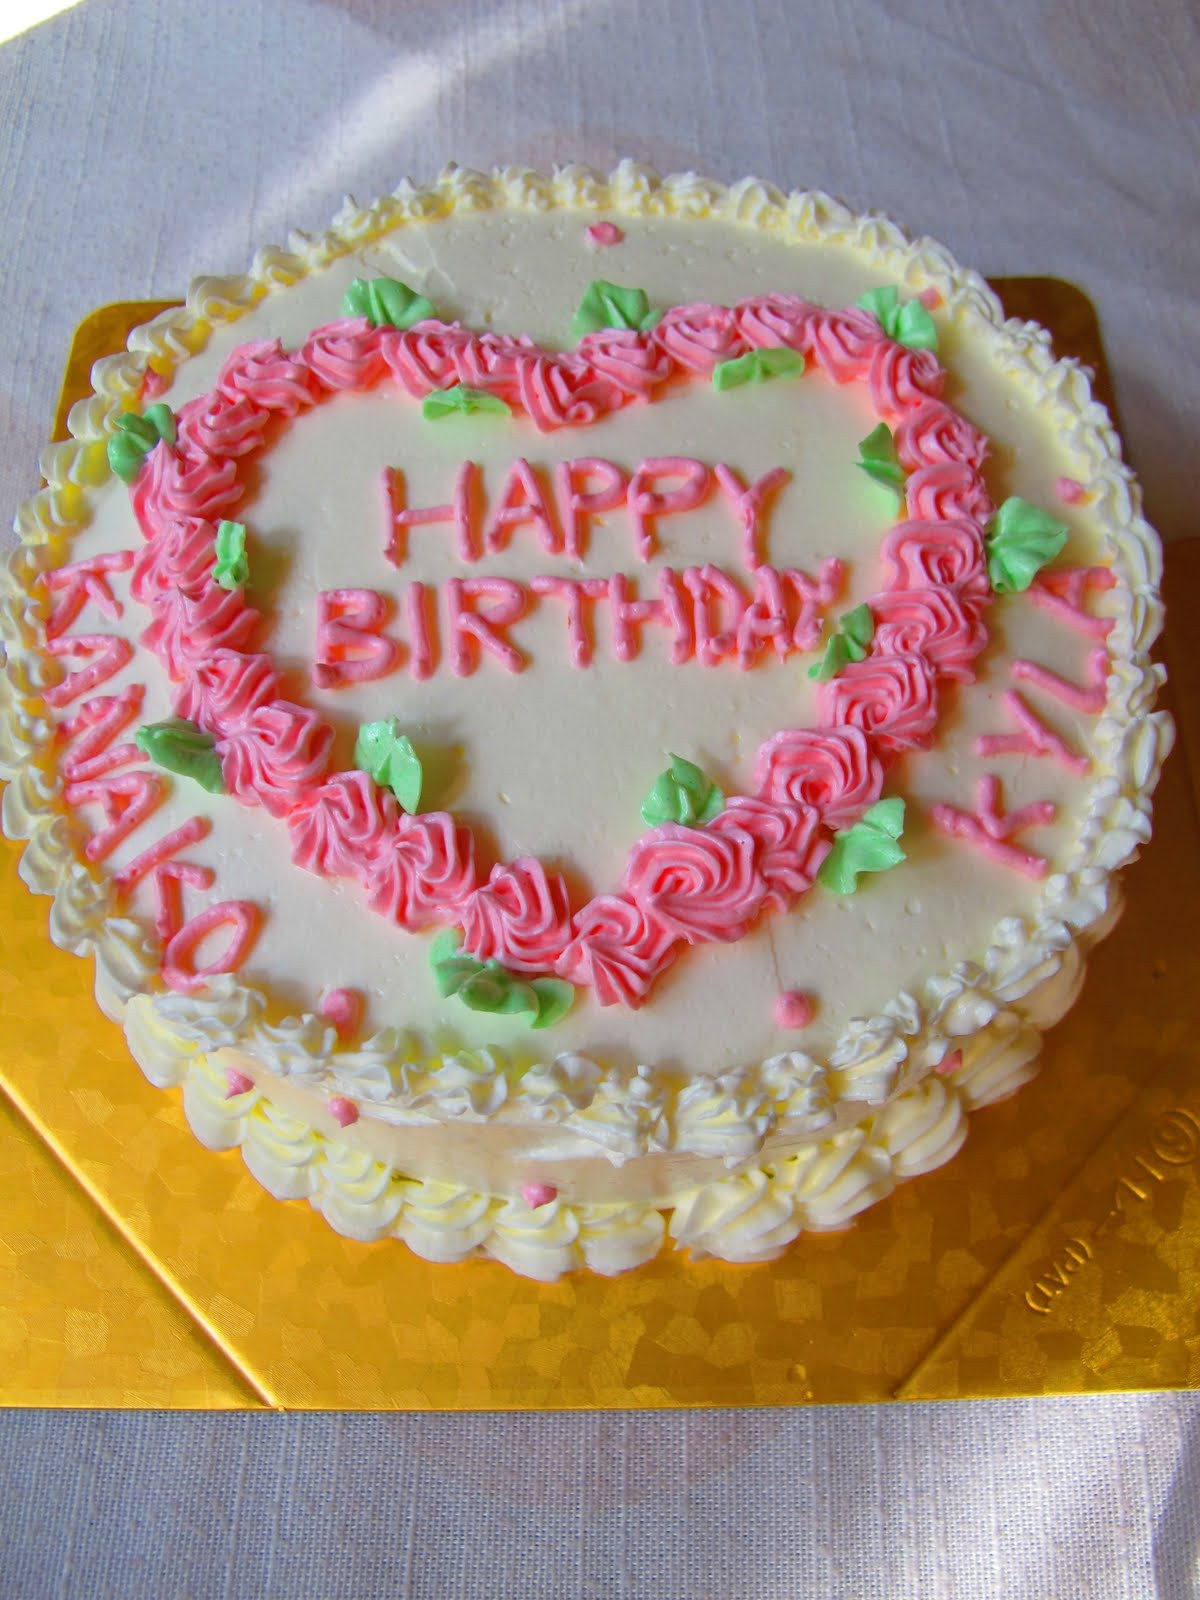 Best ideas about Happy Birthday Flowers And Cake . Save or Pin Tortelicious Flower & Butterfly Cupcakes & Birthday Cake Now.